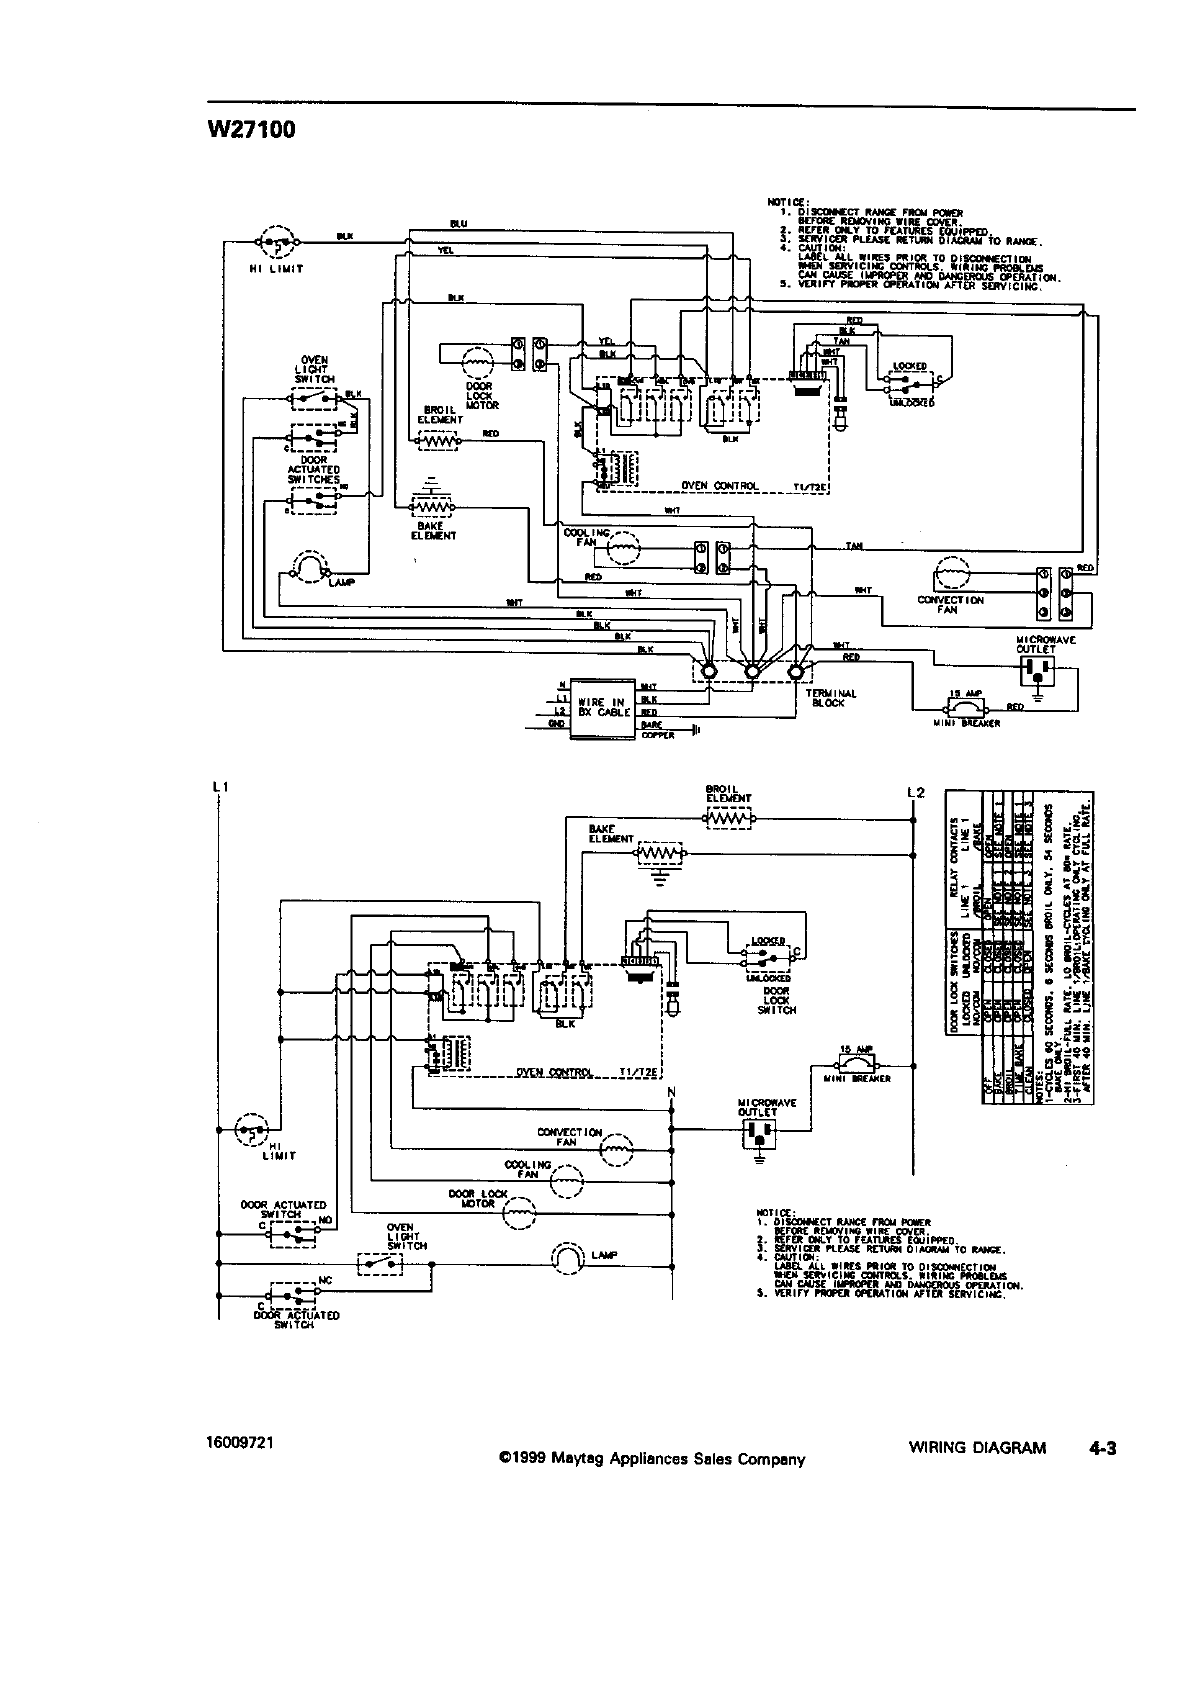 52b2f415 78fa 4259 88c0 be210120d02a bg23 page 35 of jenn air oven w27100 user guide manualsonline com Basic Electrical Wiring Diagrams at reclaimingppi.co